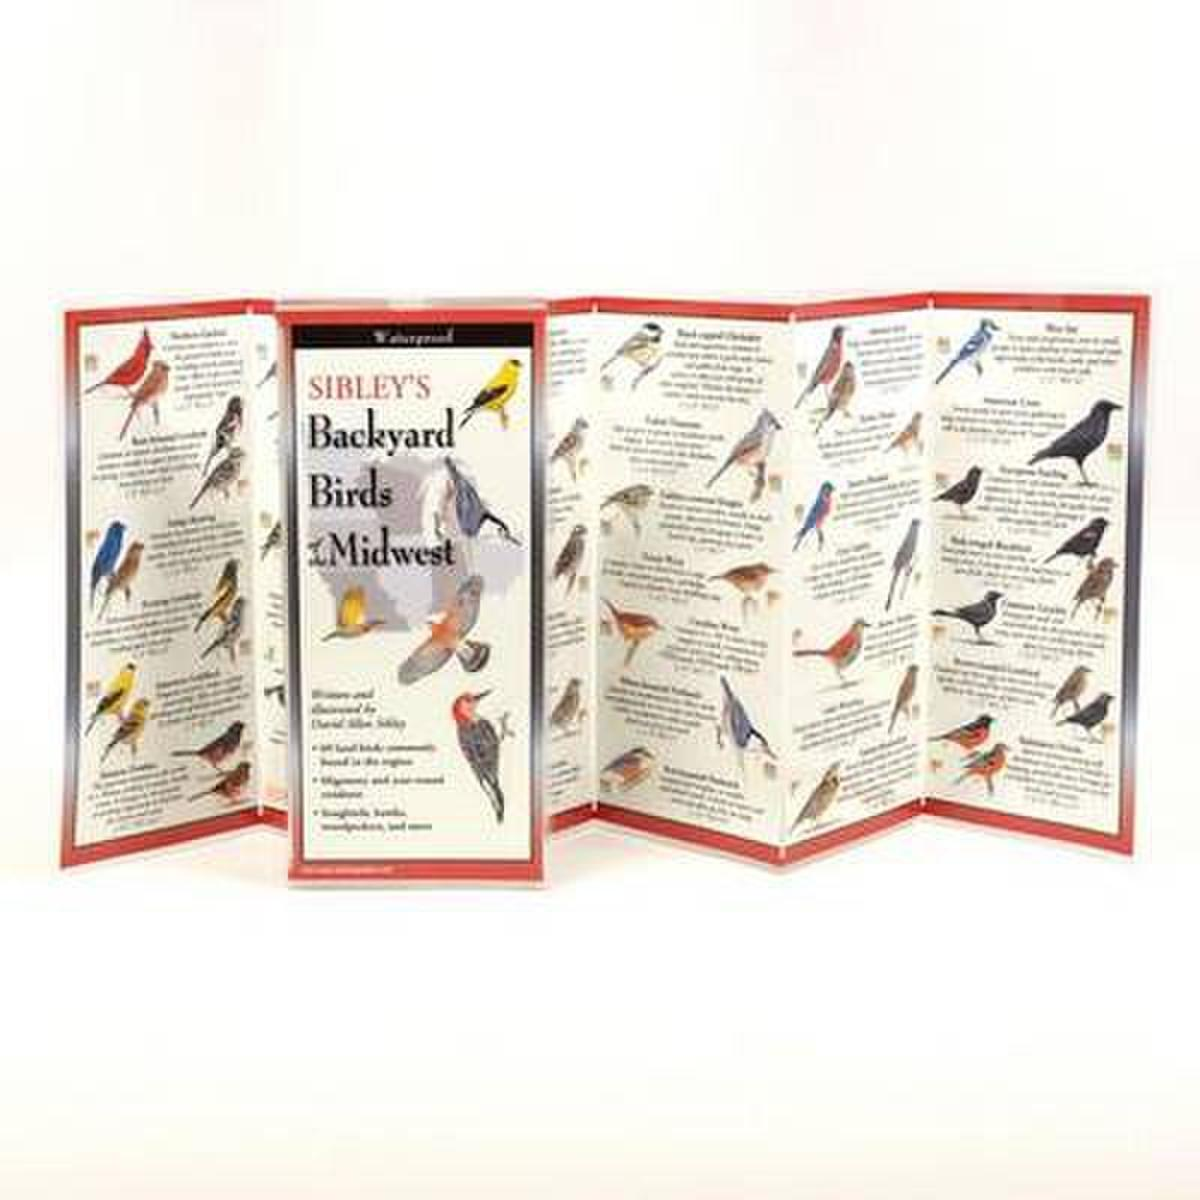 Sibley's Backyard Birds of the Midwest